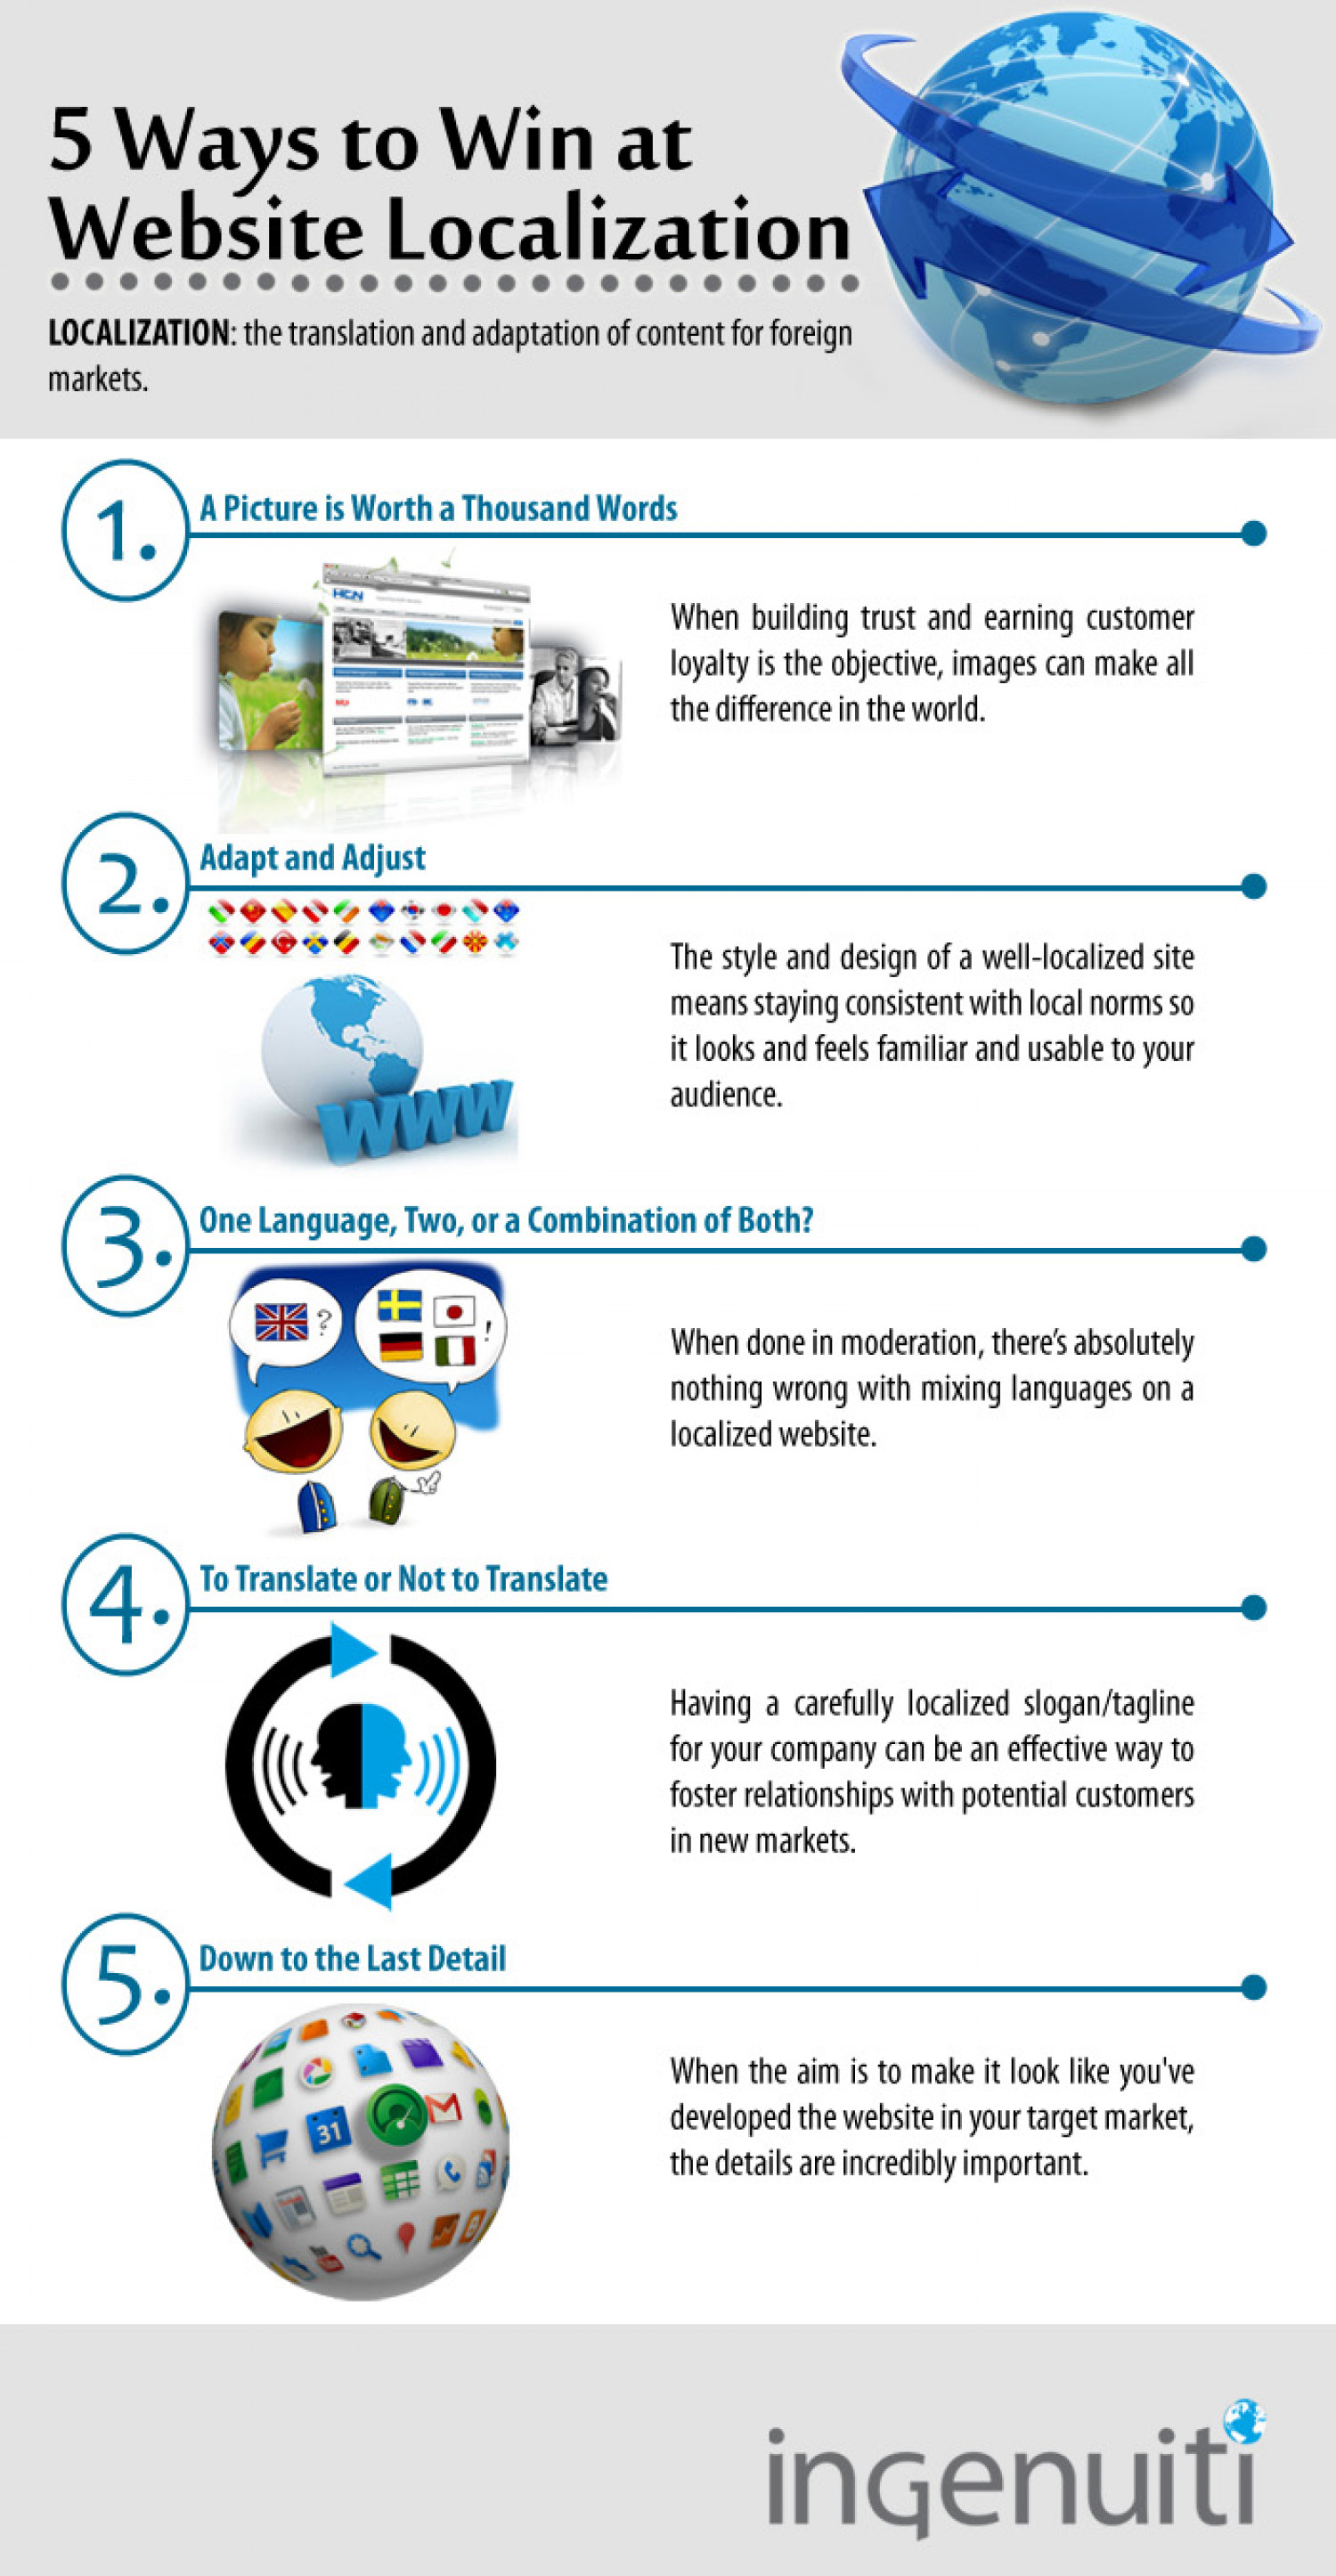 5 Ways to Win at Website Localization Infographic